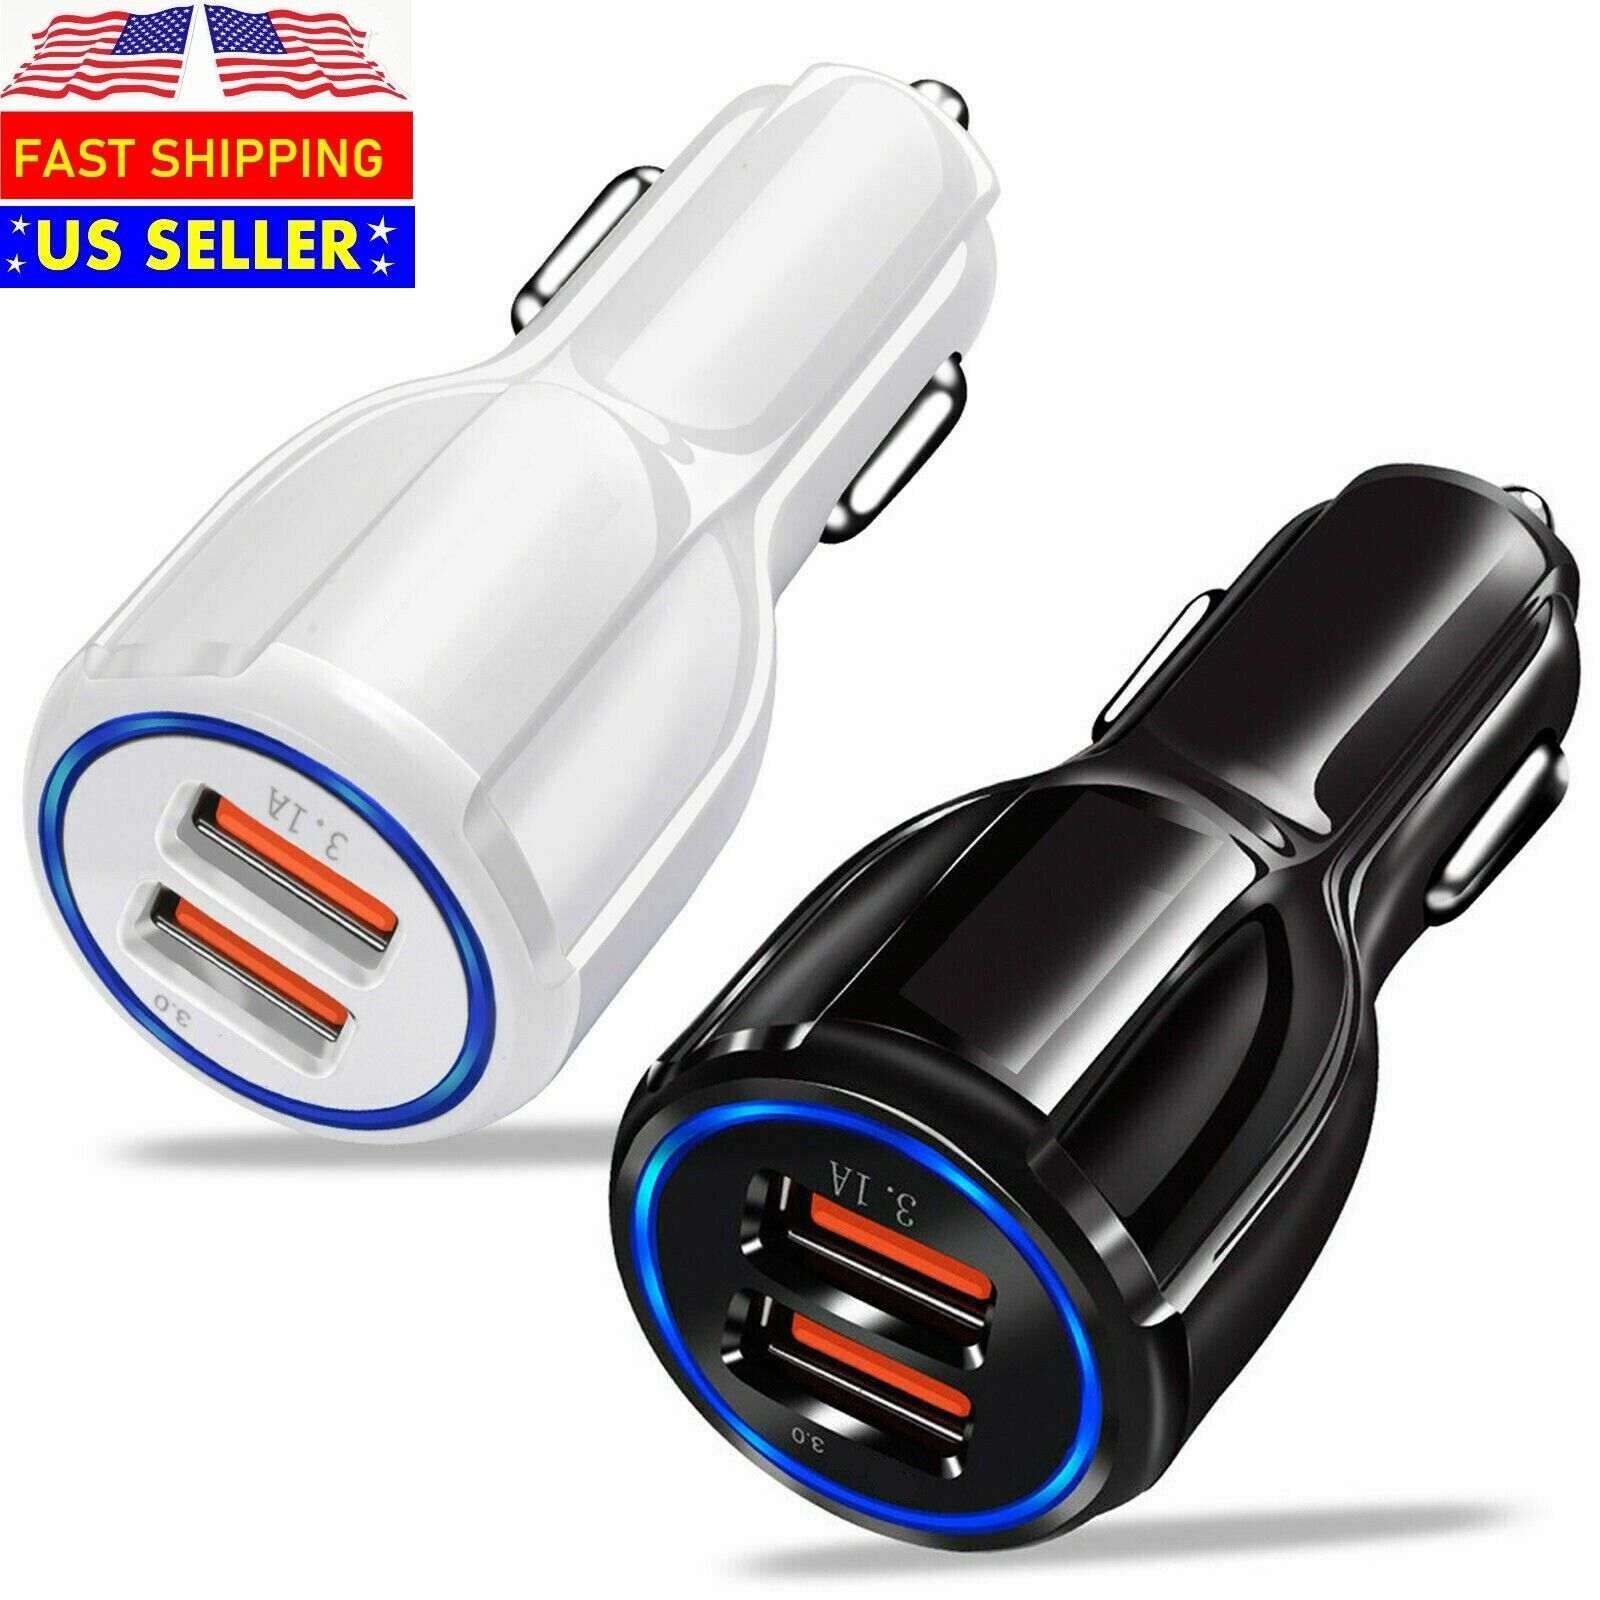 USB Fast Quick CAR Charger Adapter for Android Samsung LG iPhone Pixel iPad Cell Phone Accessories